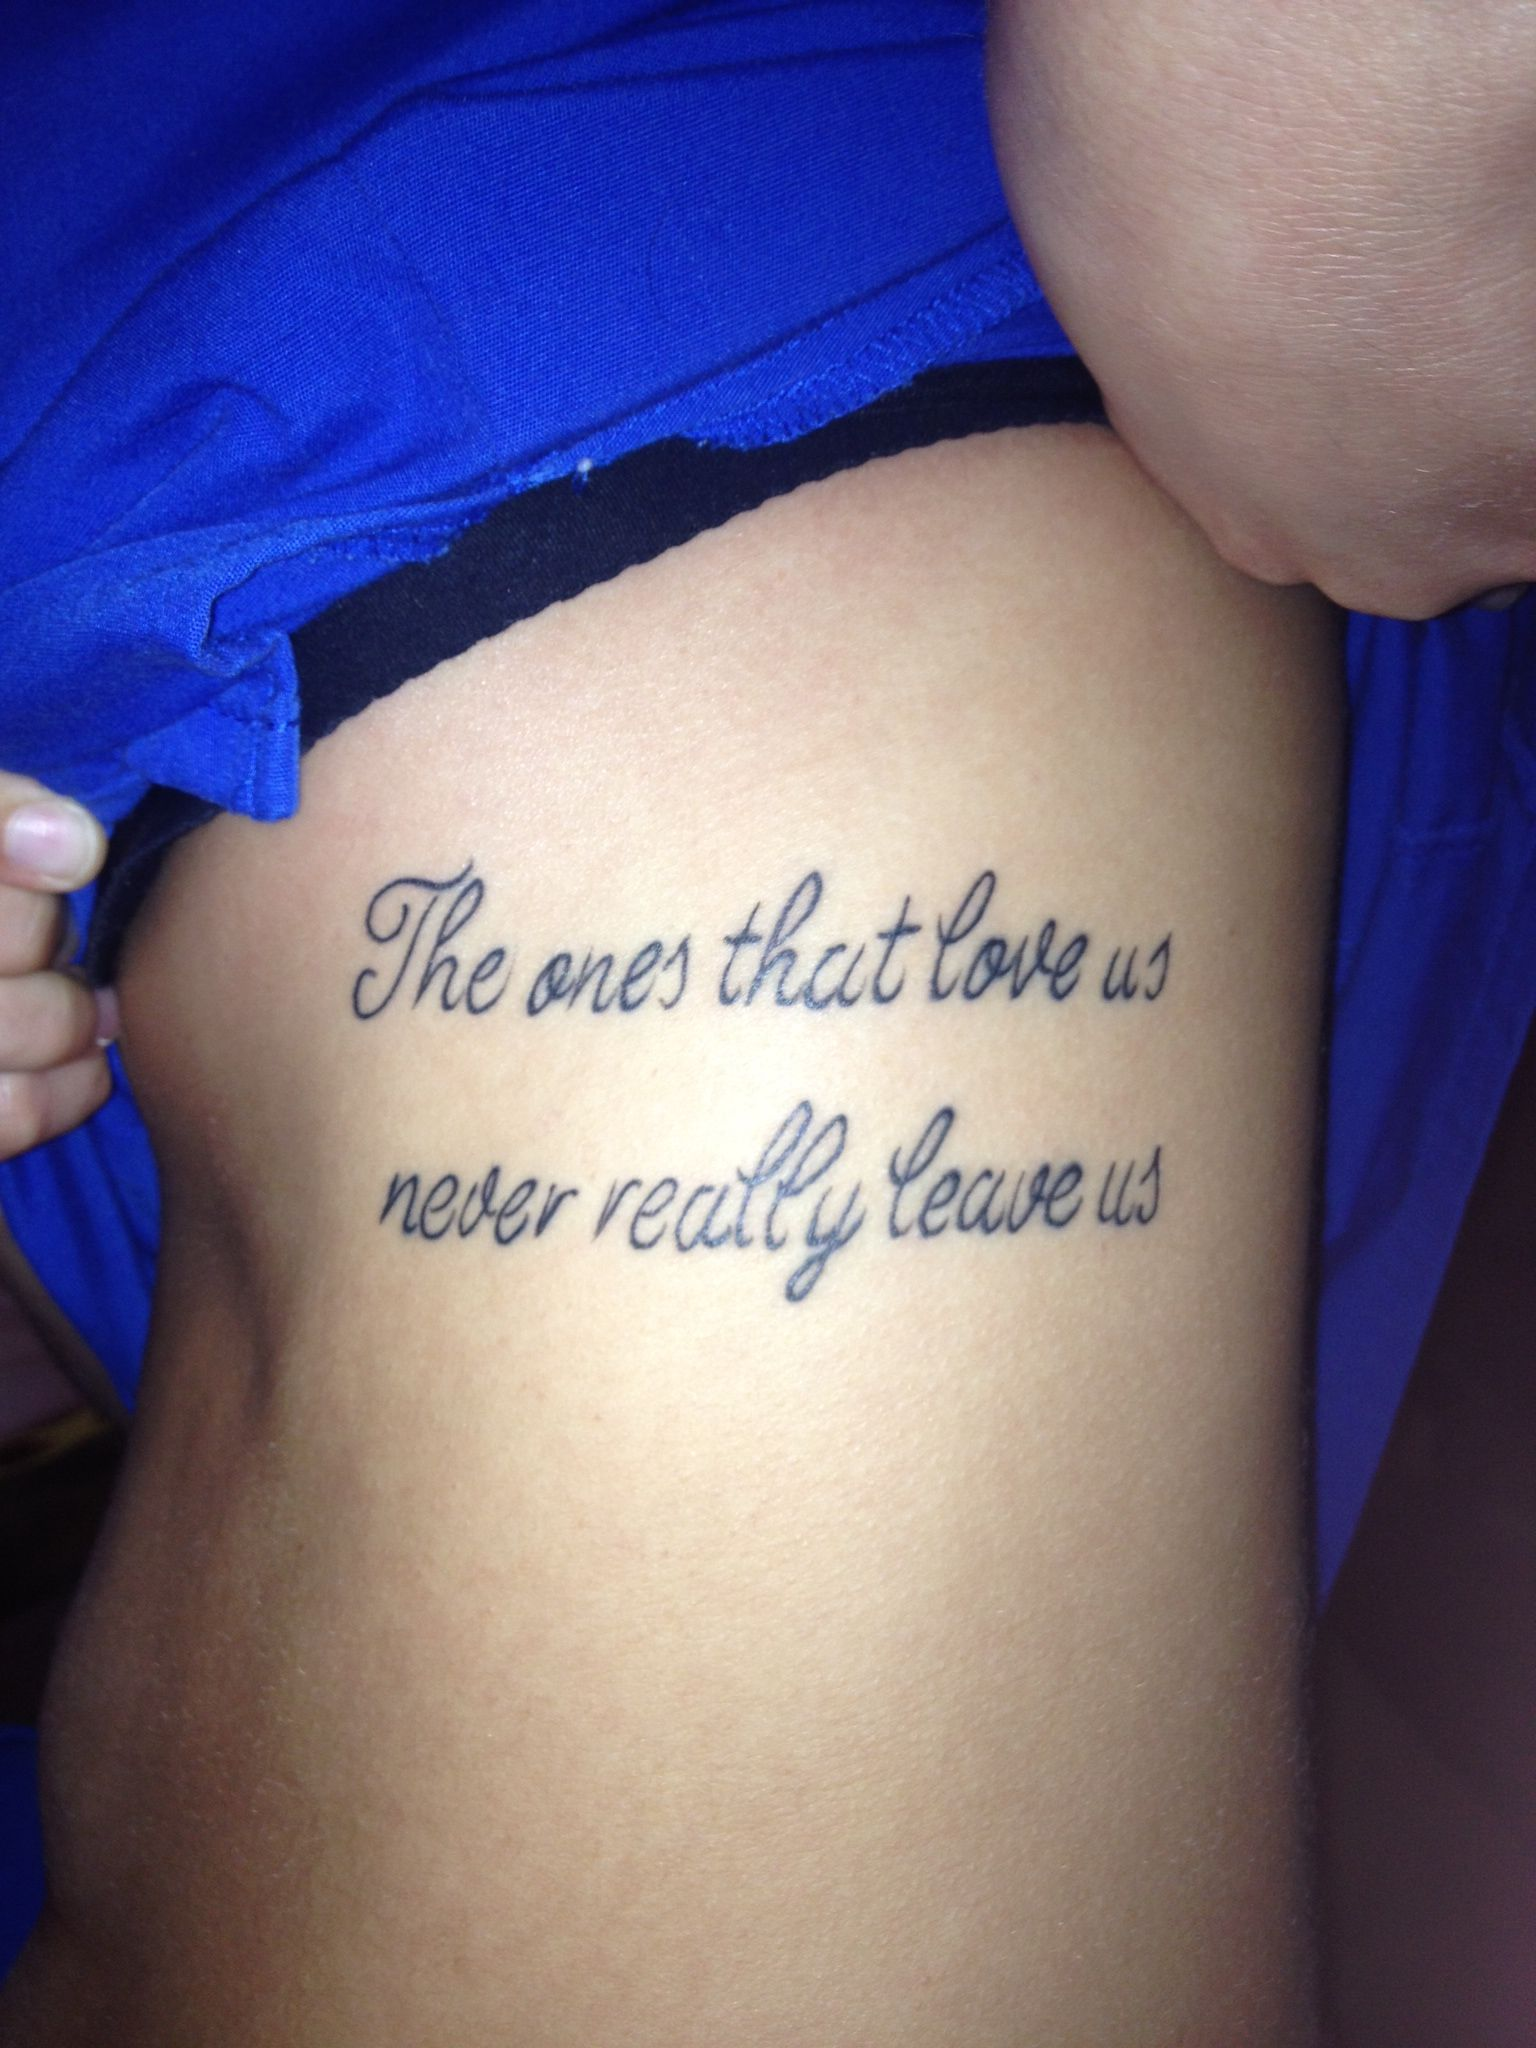 Tattoo on my ribs. HP quote.